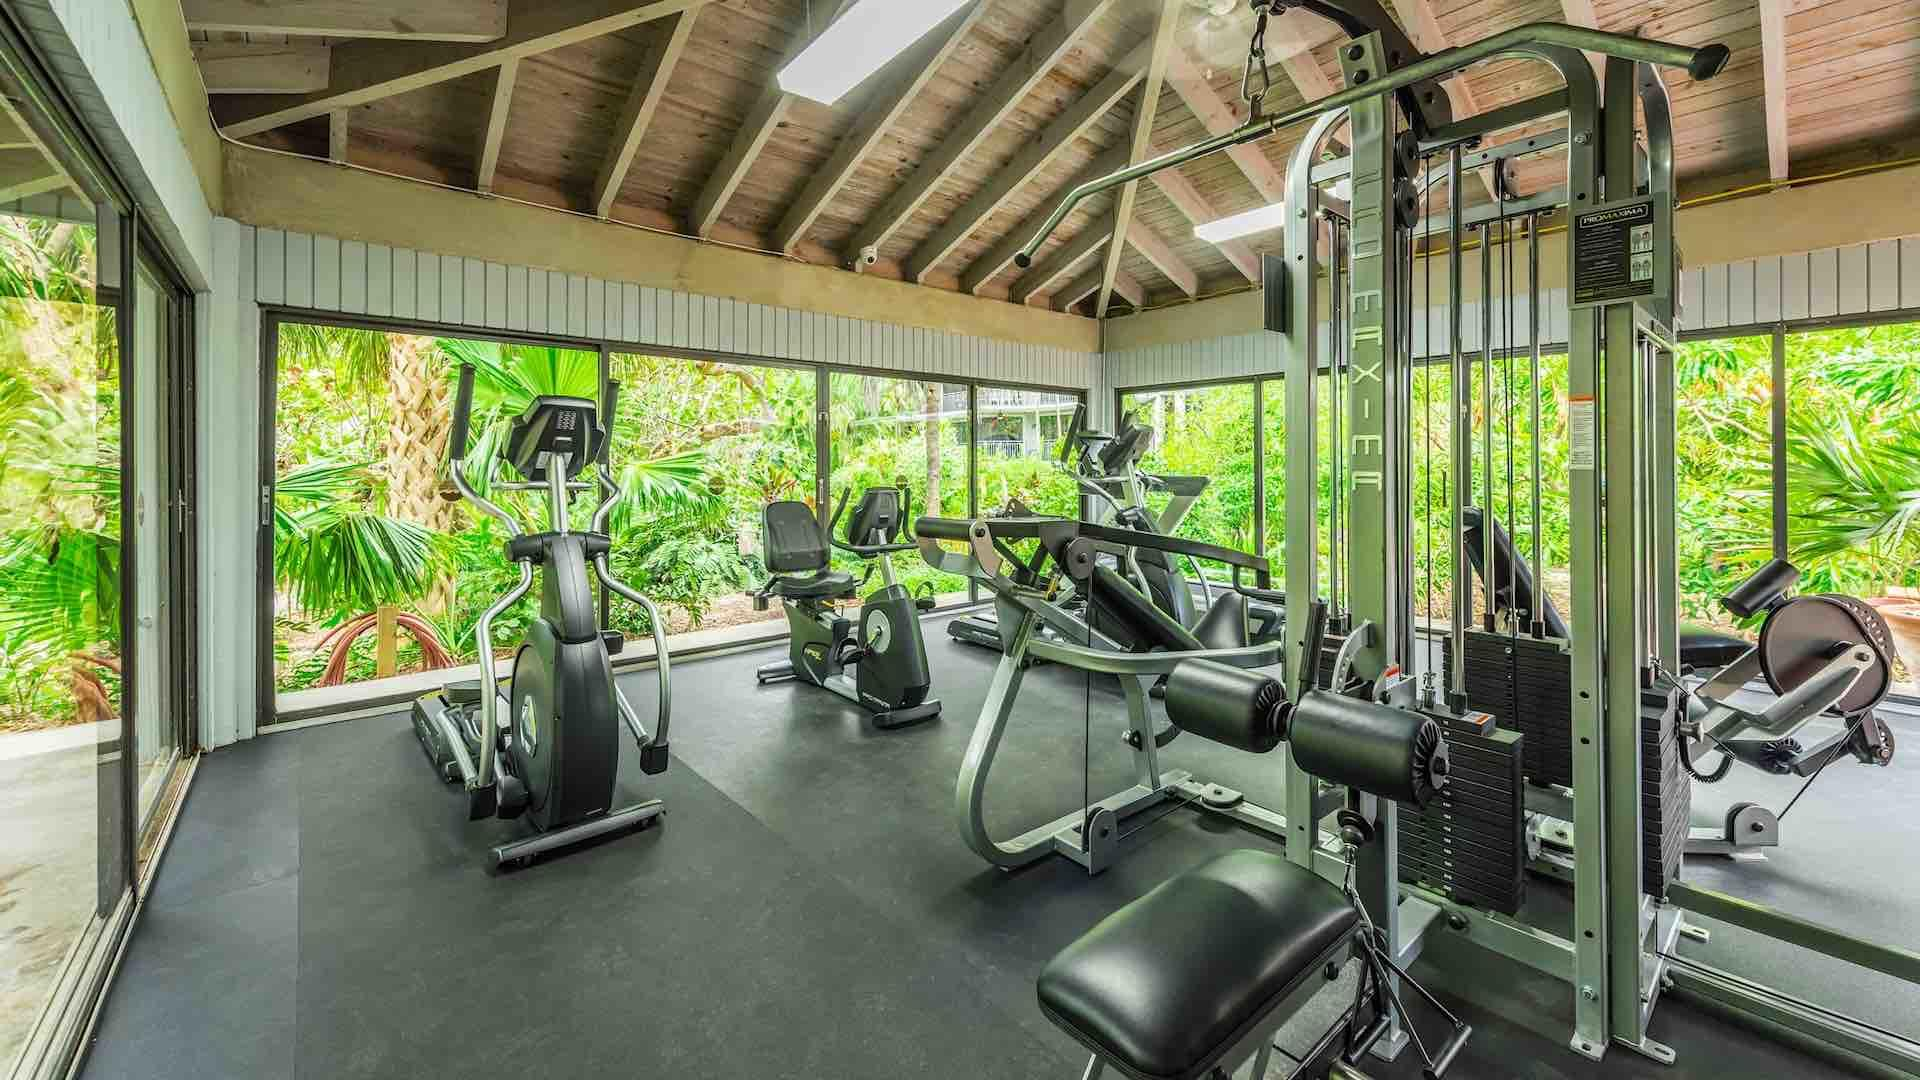 Guests have access to the newly constructed Fitness Center...